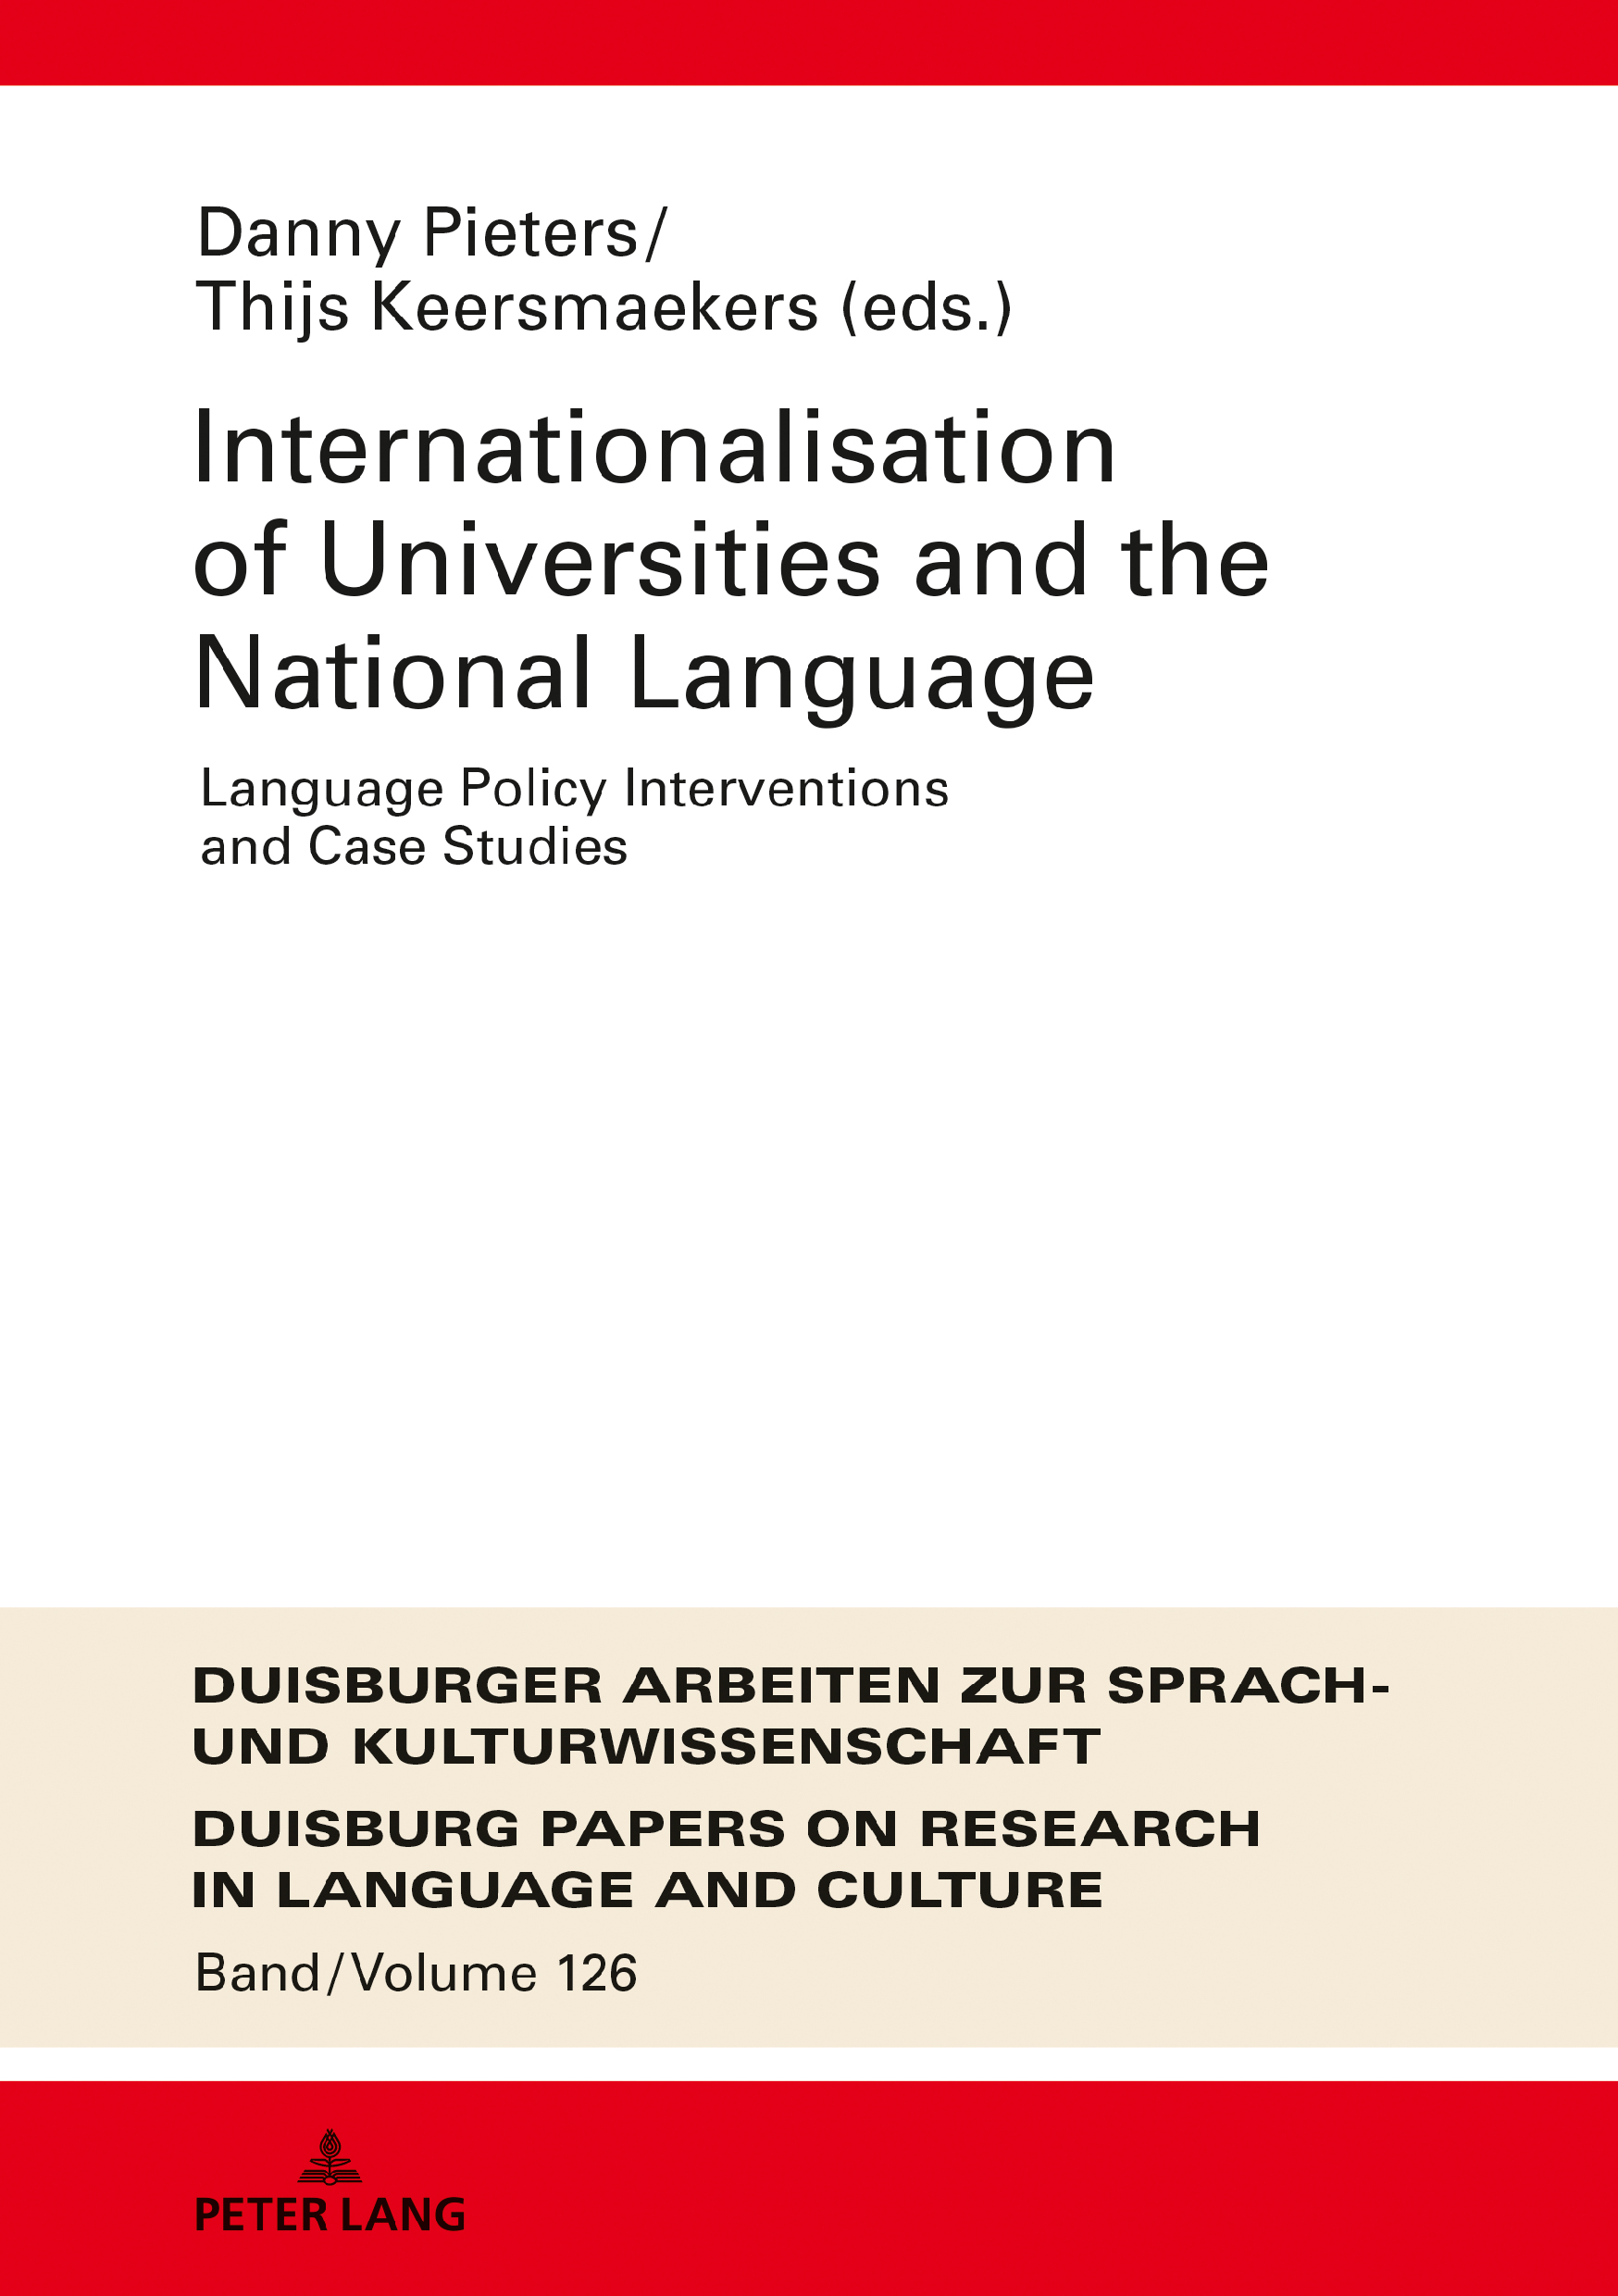 Internationalization of Universities and the National Language